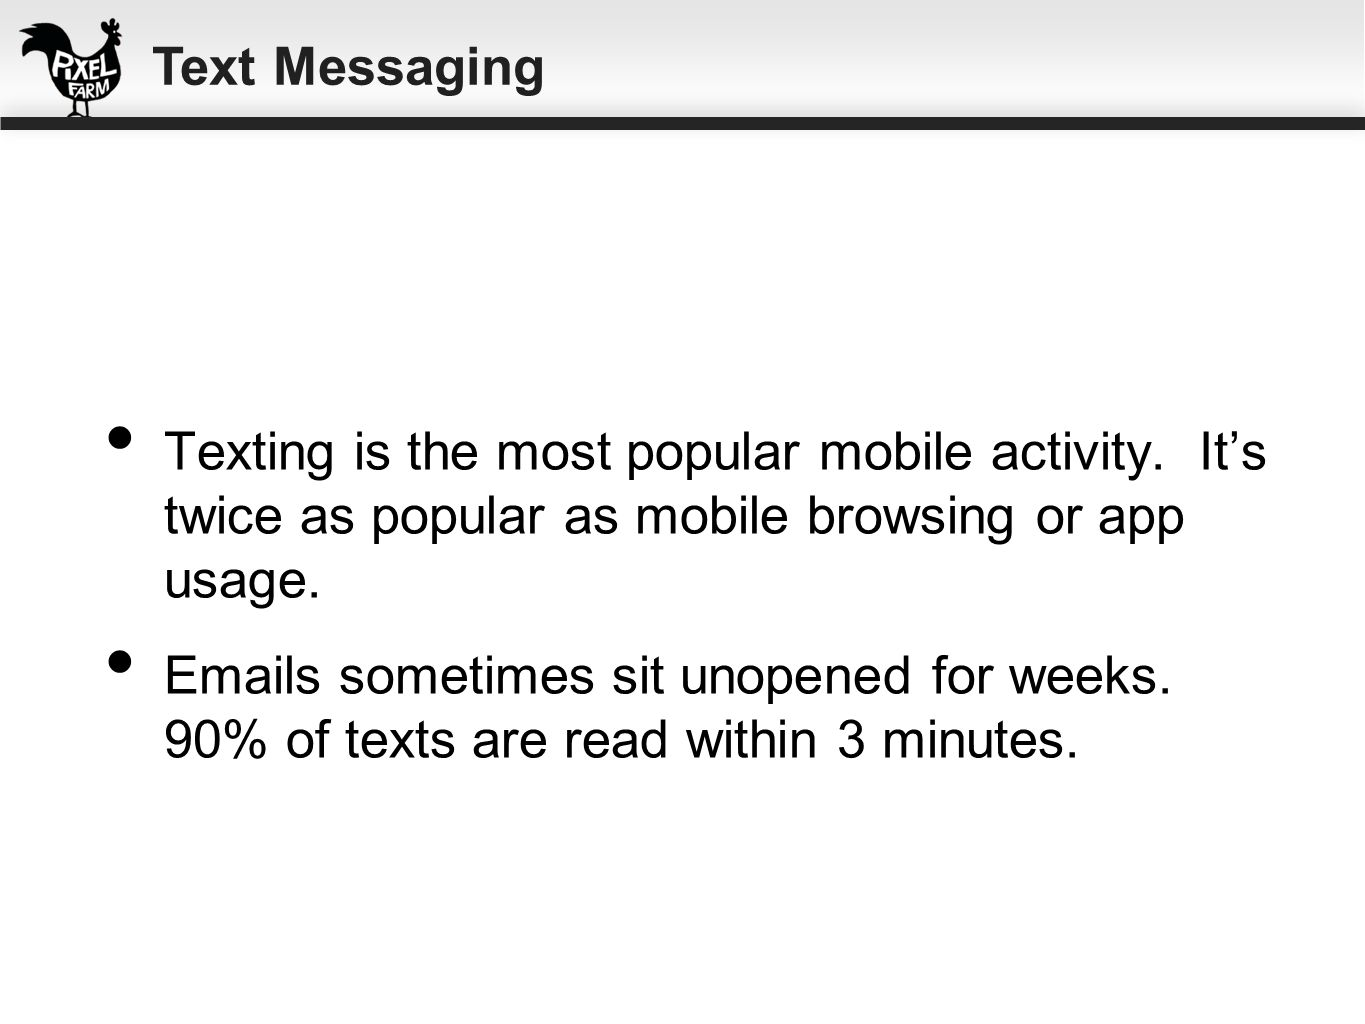 Text MessagingTexting is the most popular mobile activity. It's twice as popular as mobile browsing or app usage.